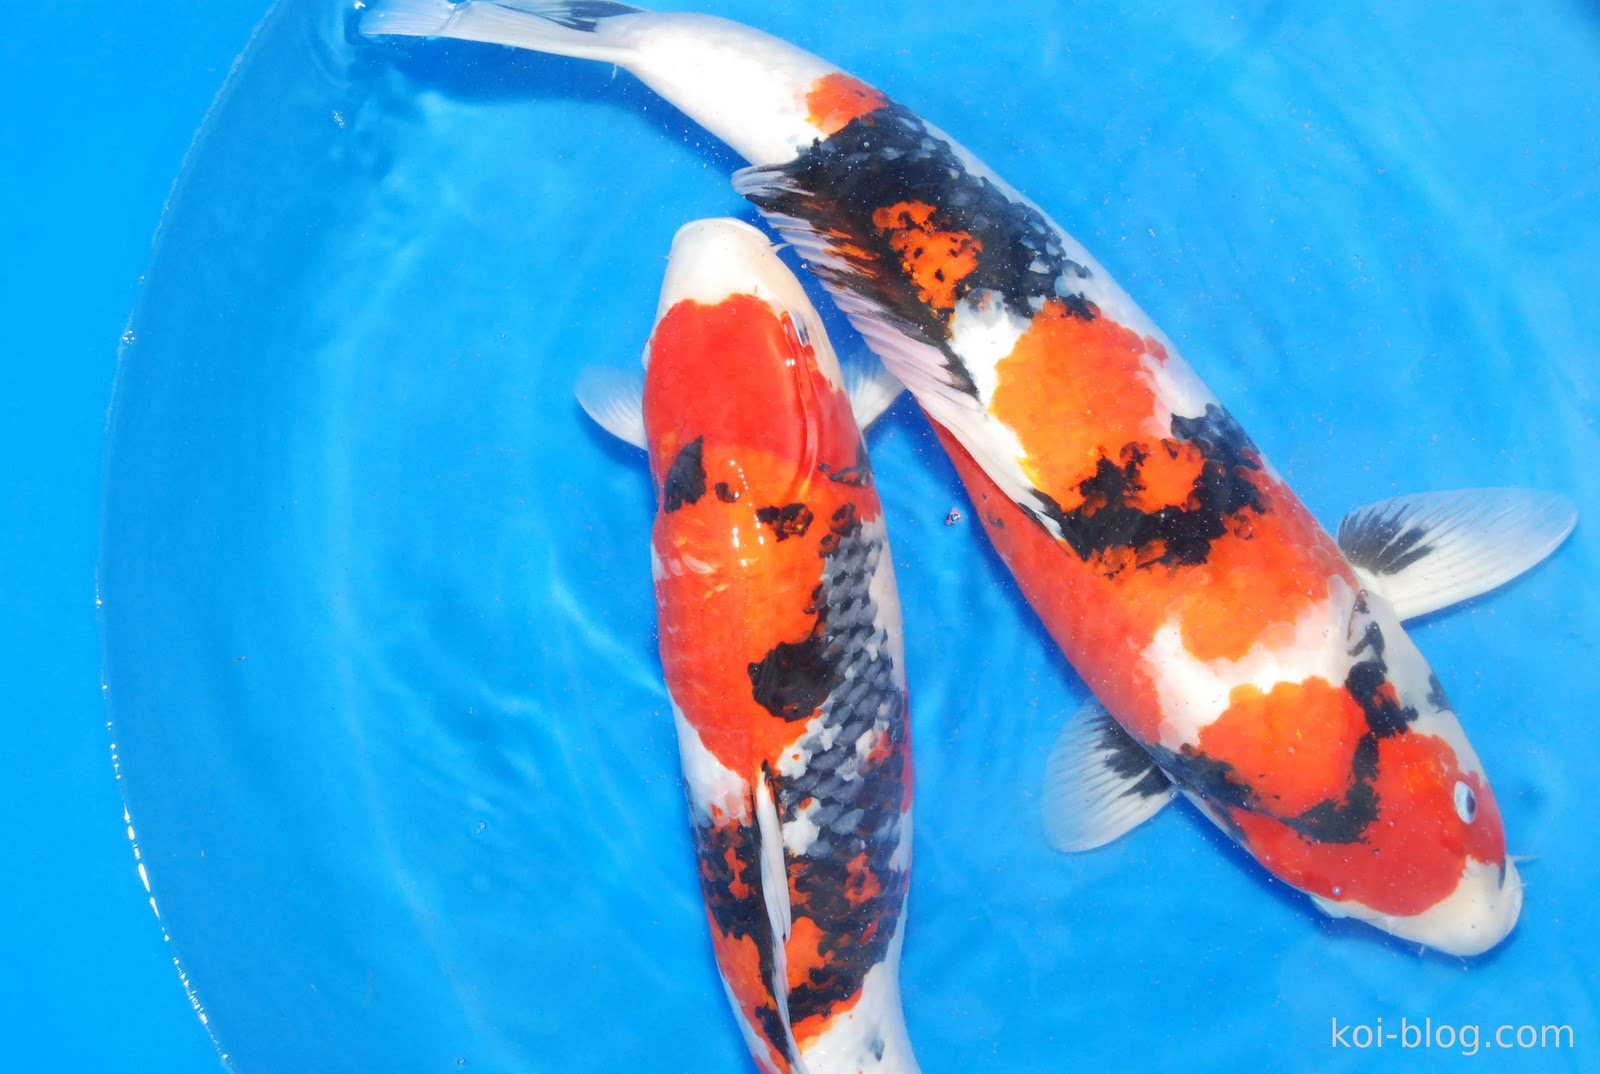 Koi blog koi for Koi carp fish information